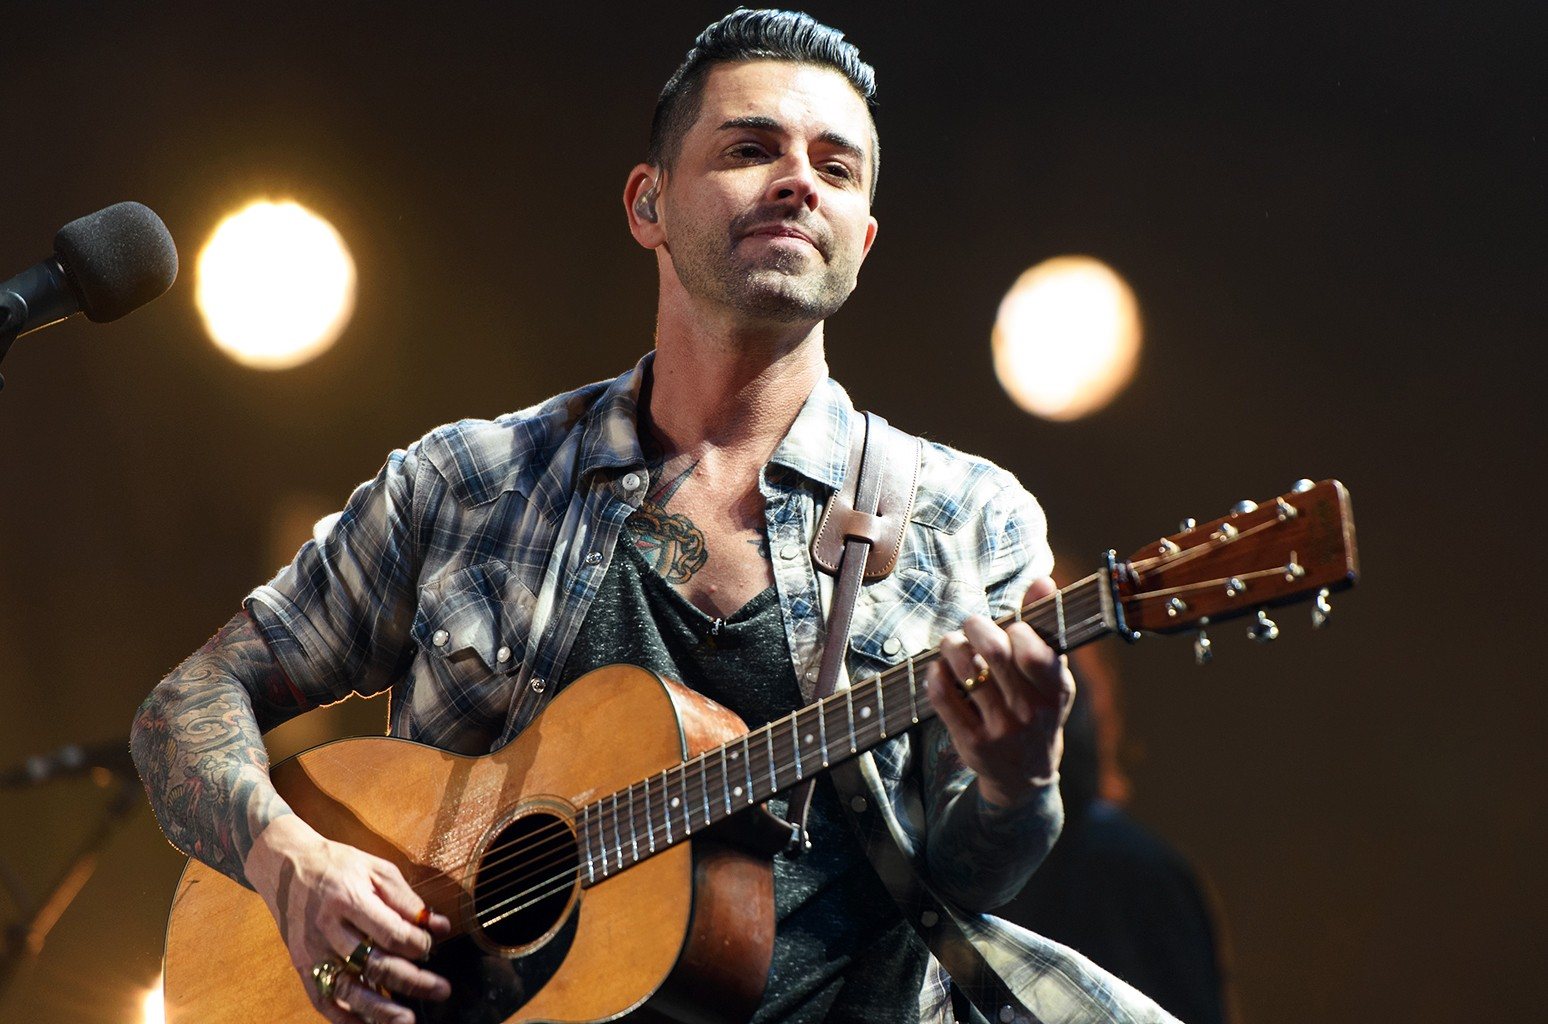 Chris Carrabba of Dashboard Confessional performs at FirstMerit Bank Pavilion at Northerly Island on June 26, 2015 in Chicago.